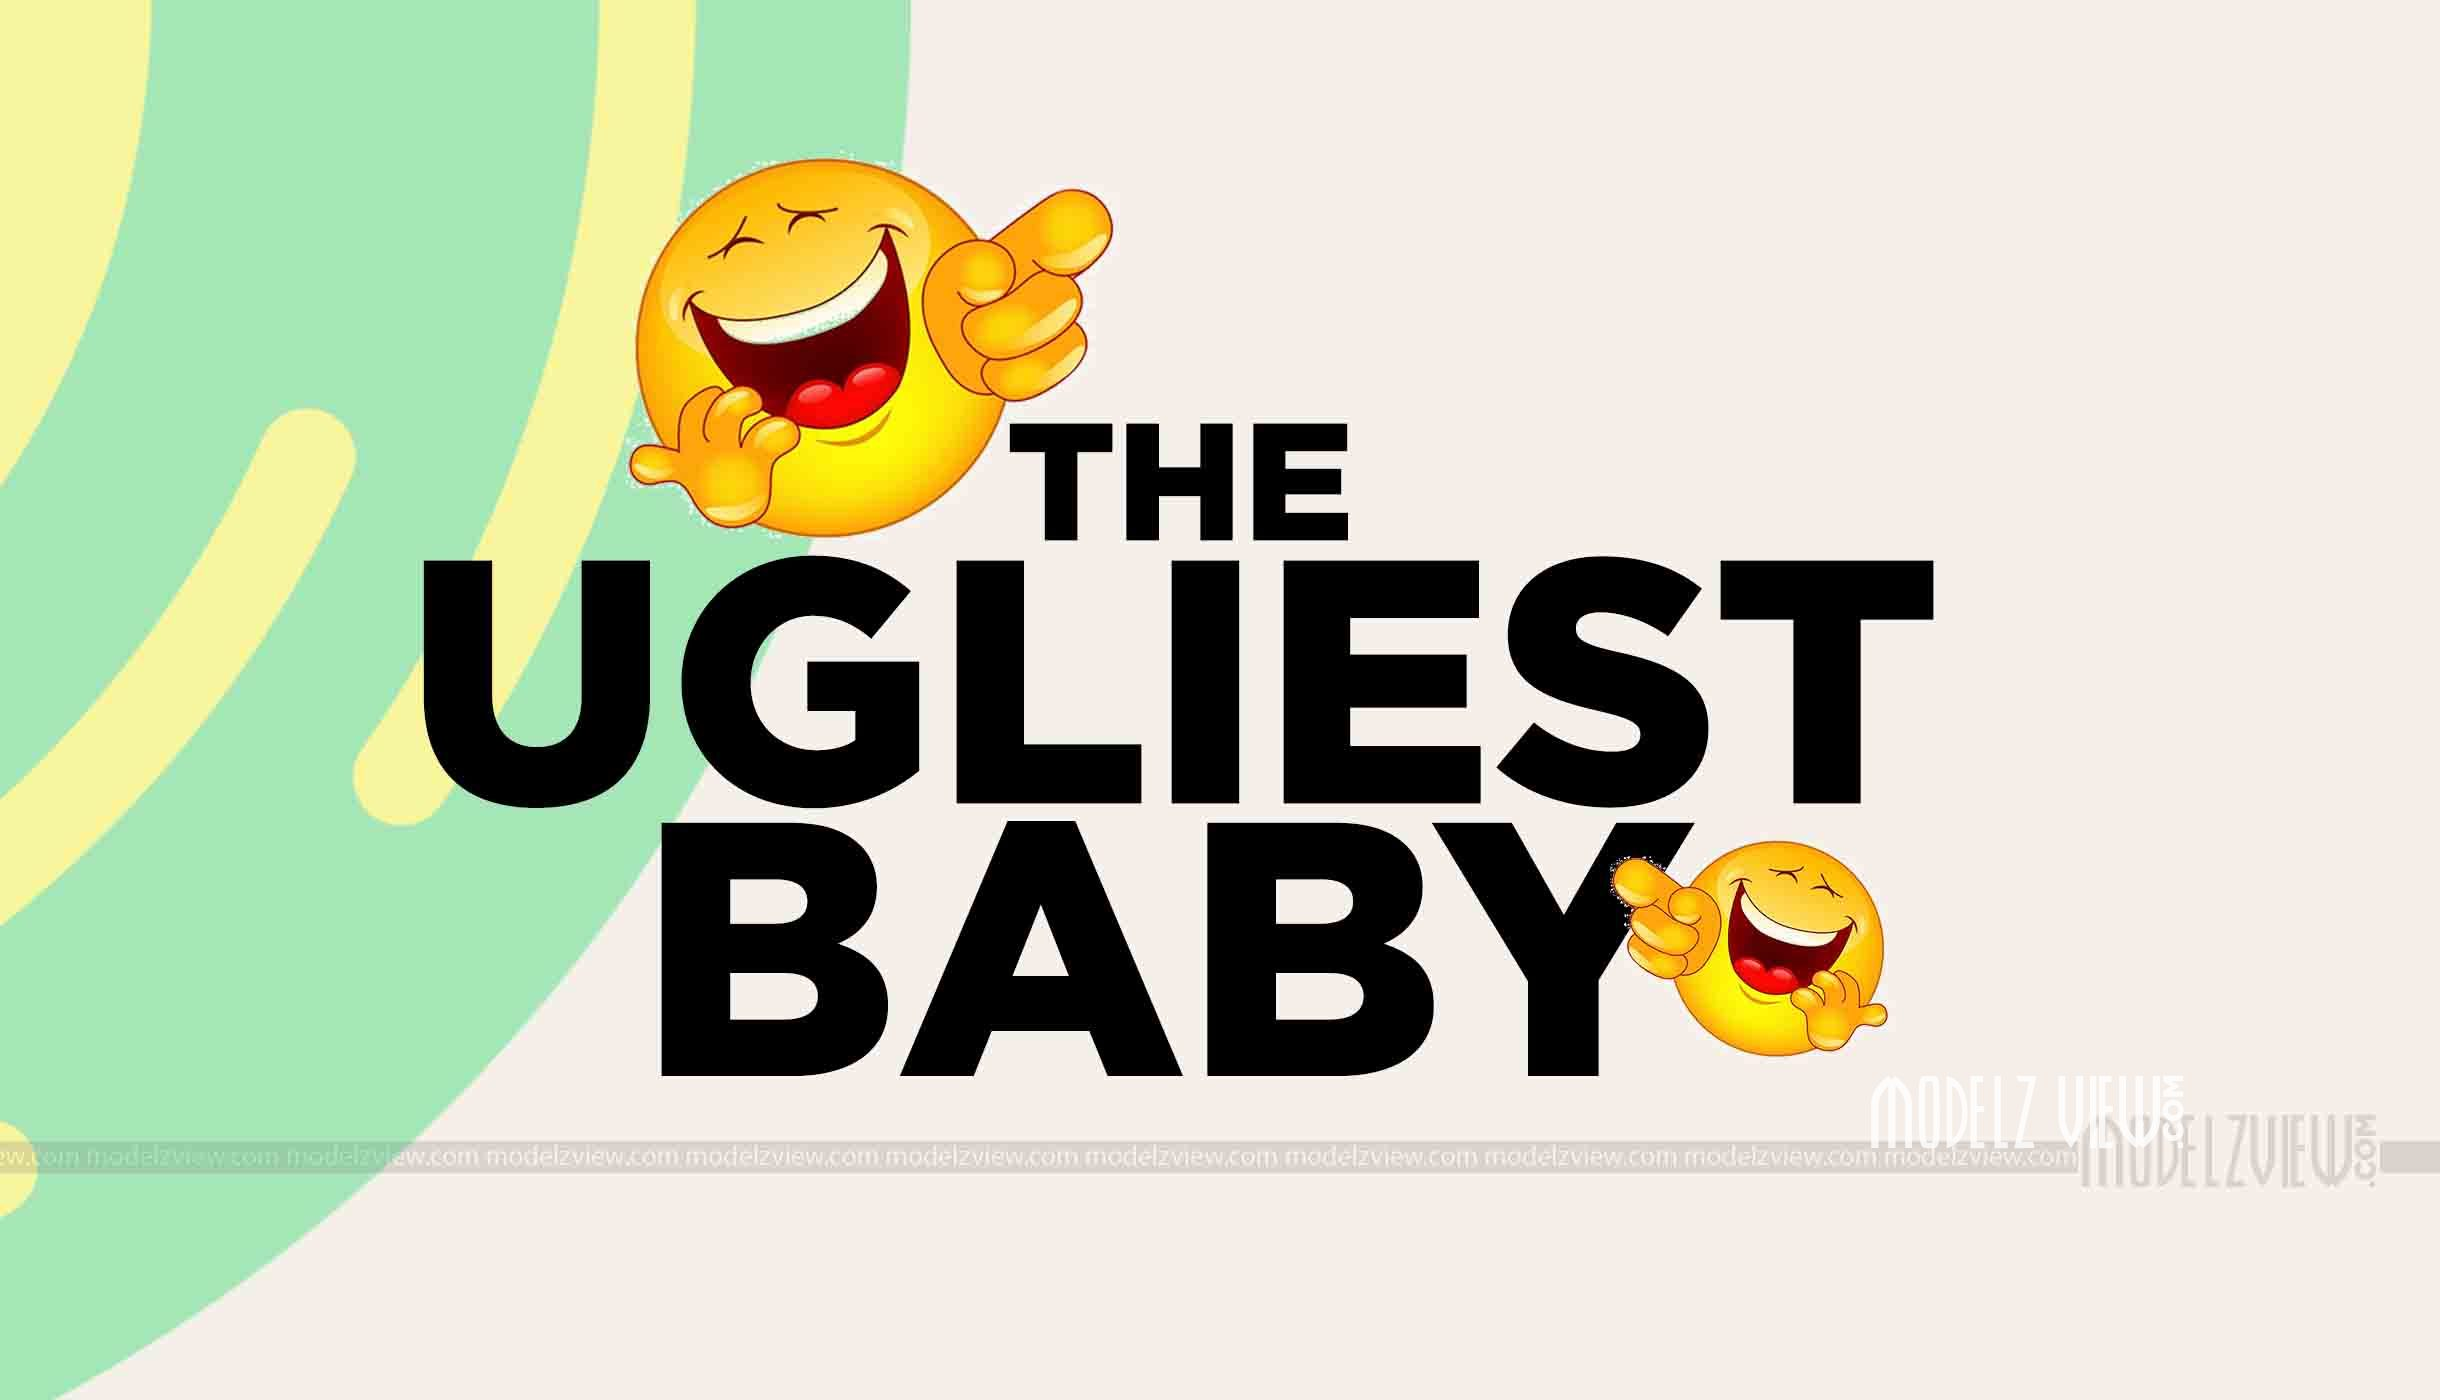 The Ugliest Baby – Funny Jokes That Never Get Old vol.02